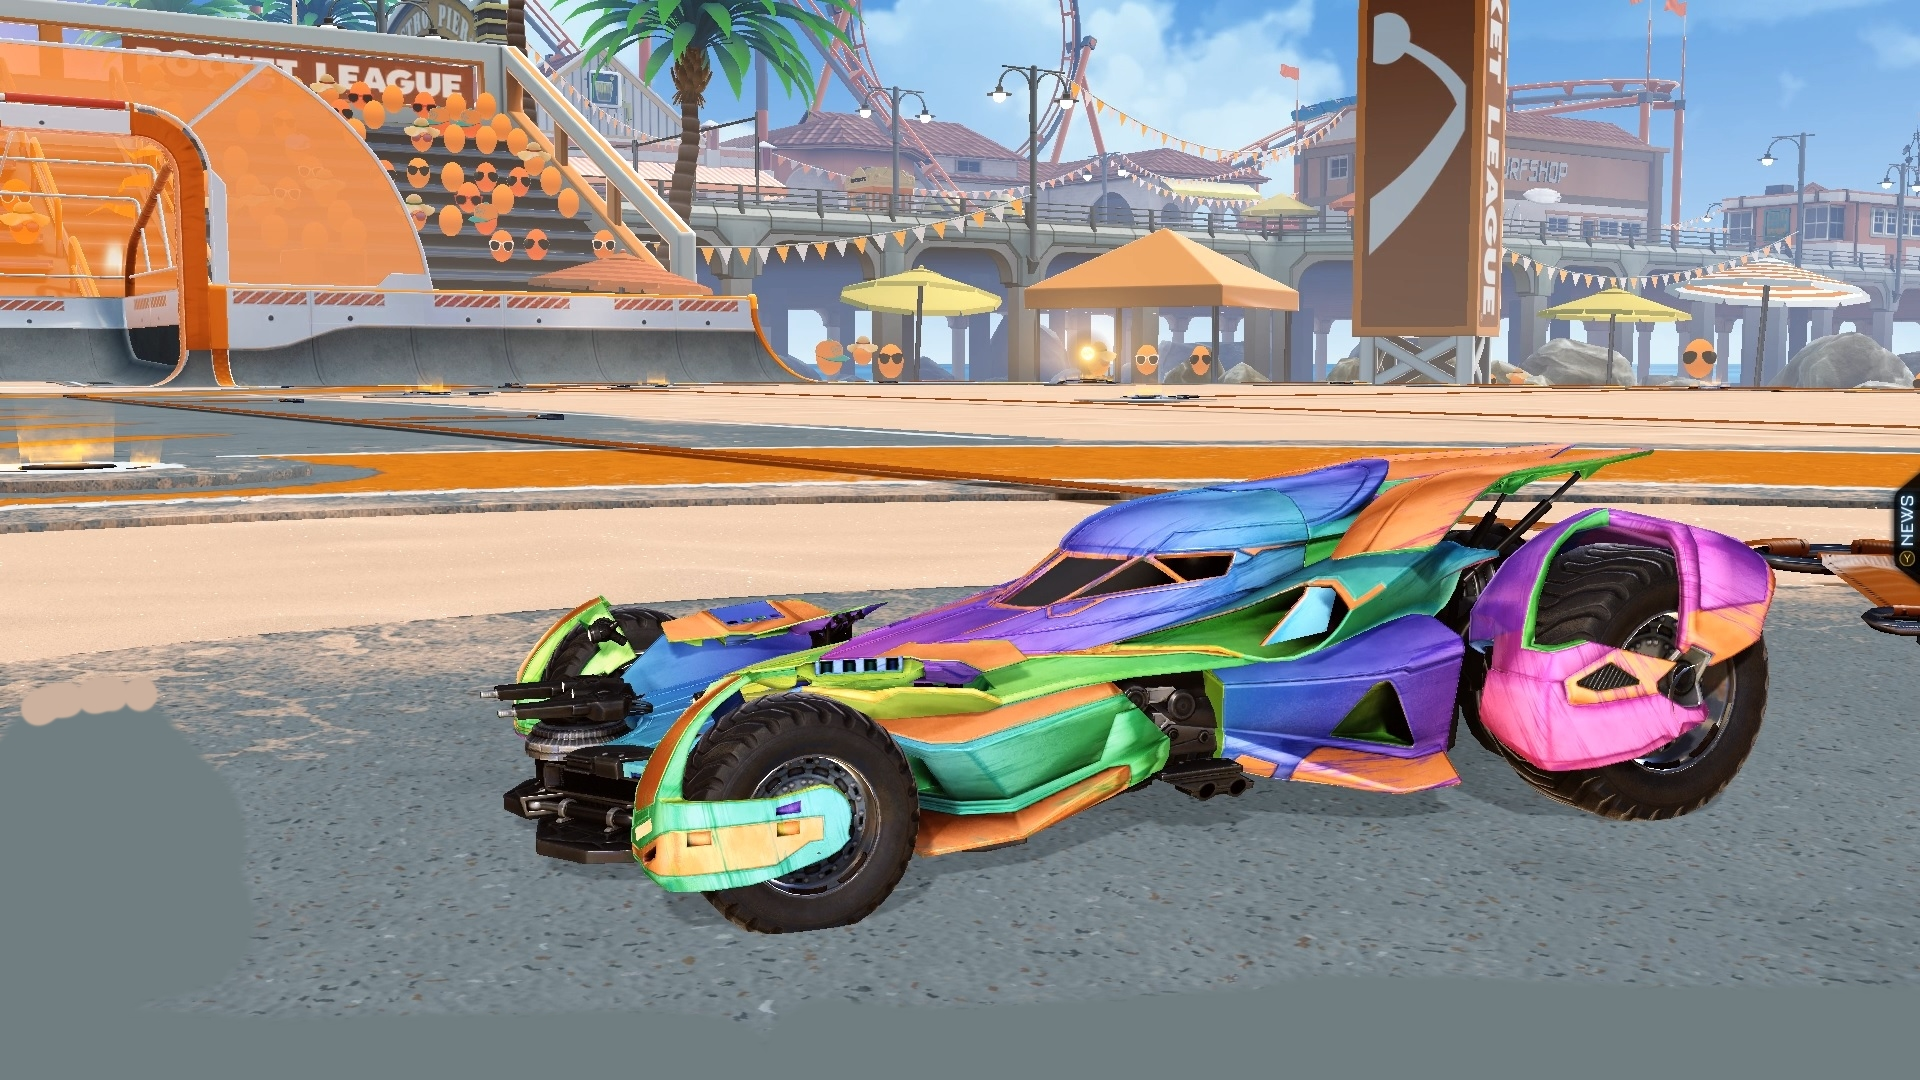 Mods Pack 1 | Rainbow decal | Transparent boost | New banners